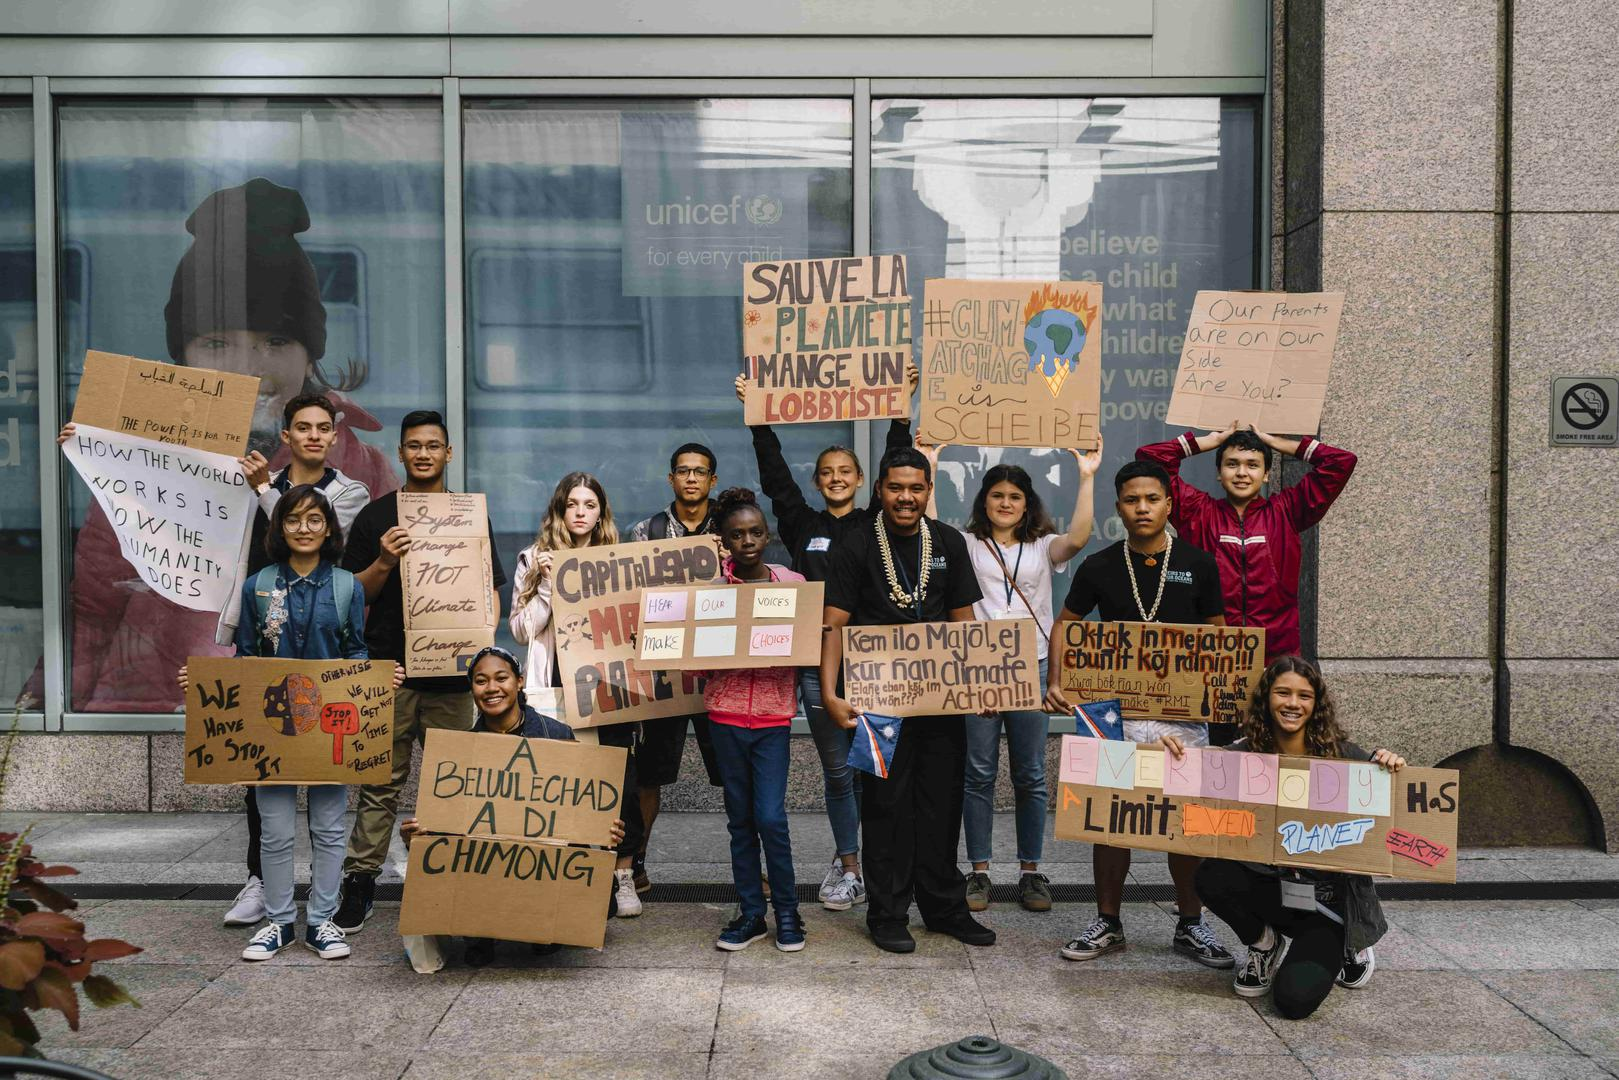 Youth activists from all continents have brought a complaint to the UN Committee on the Rights of the Child (CRC) on climate change.